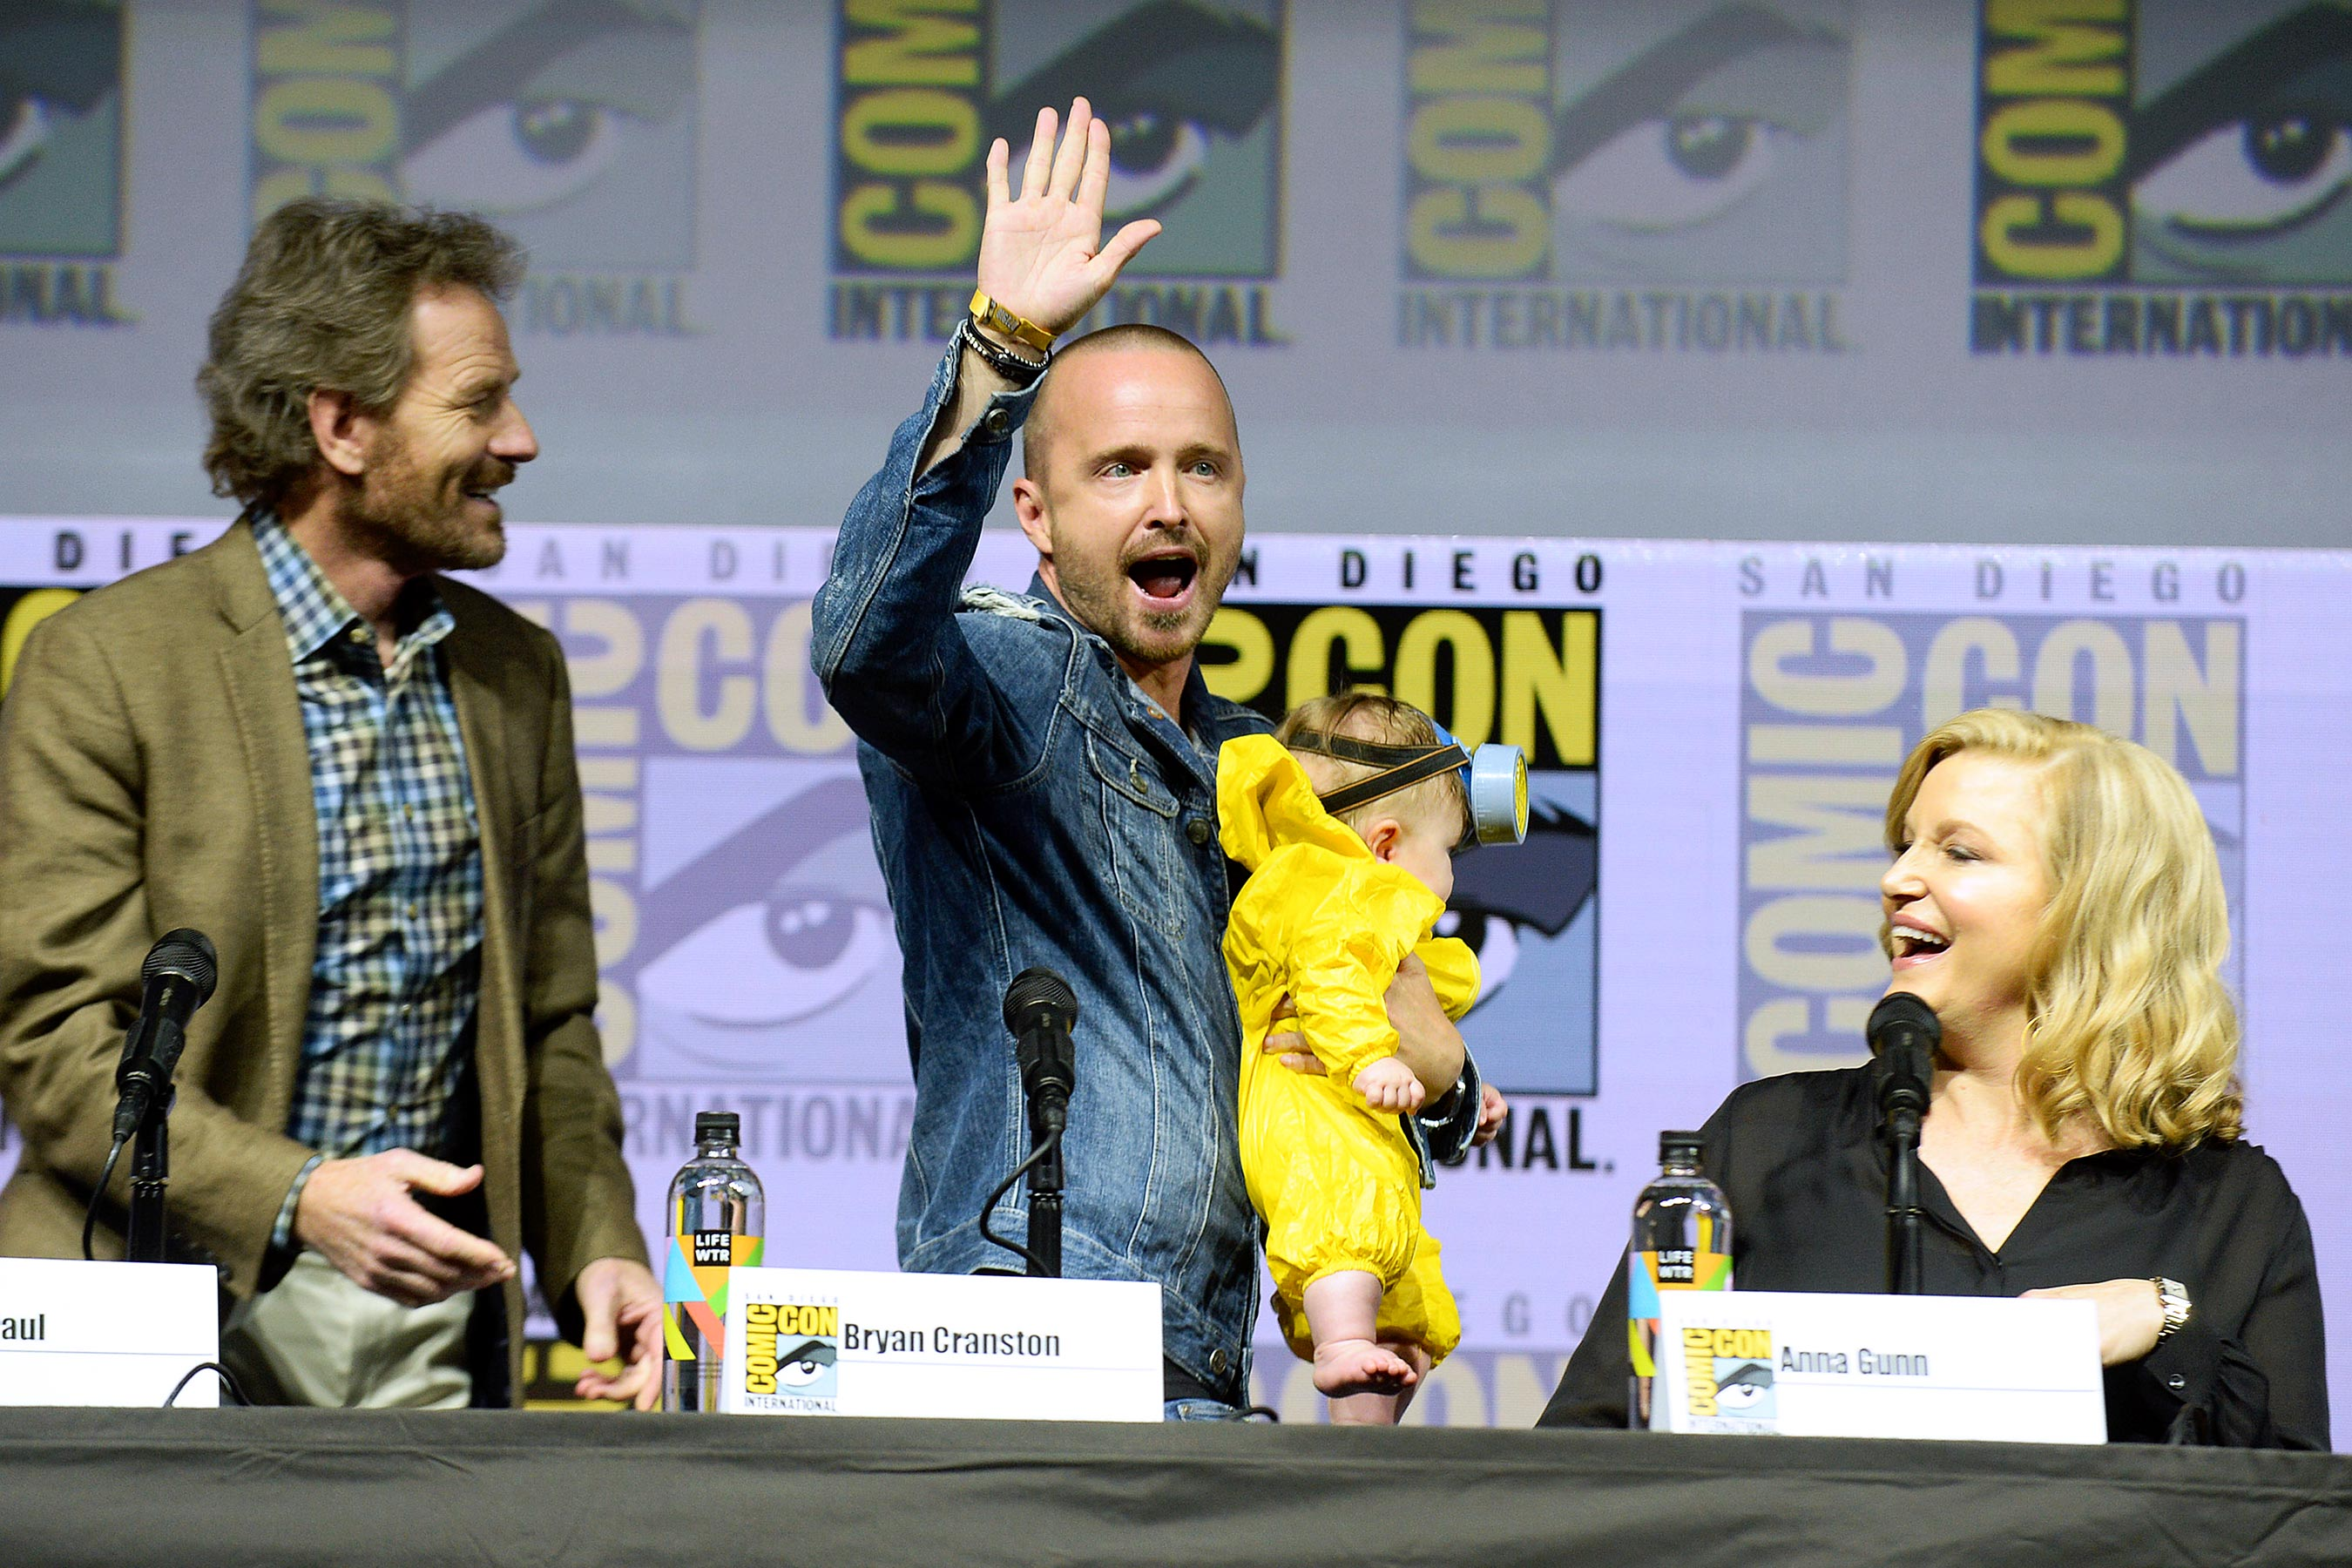 breaking bad reunion at comic con 2018 with aaron paul baby bryan cranston